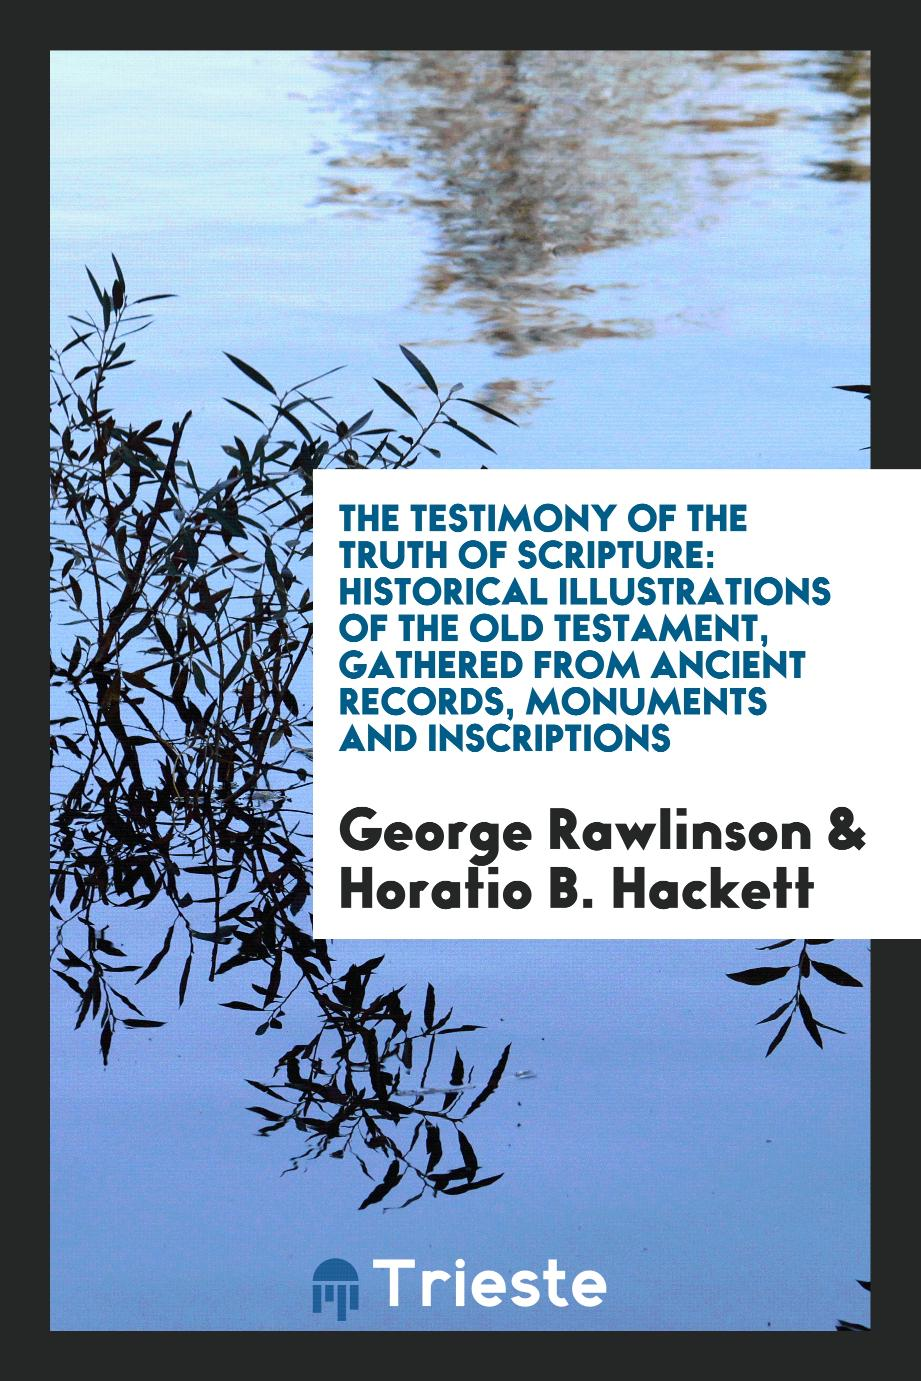 The testimony of the truth of scripture: historical illustrations of the Old Testament, gathered from ancient records, monuments and inscriptions